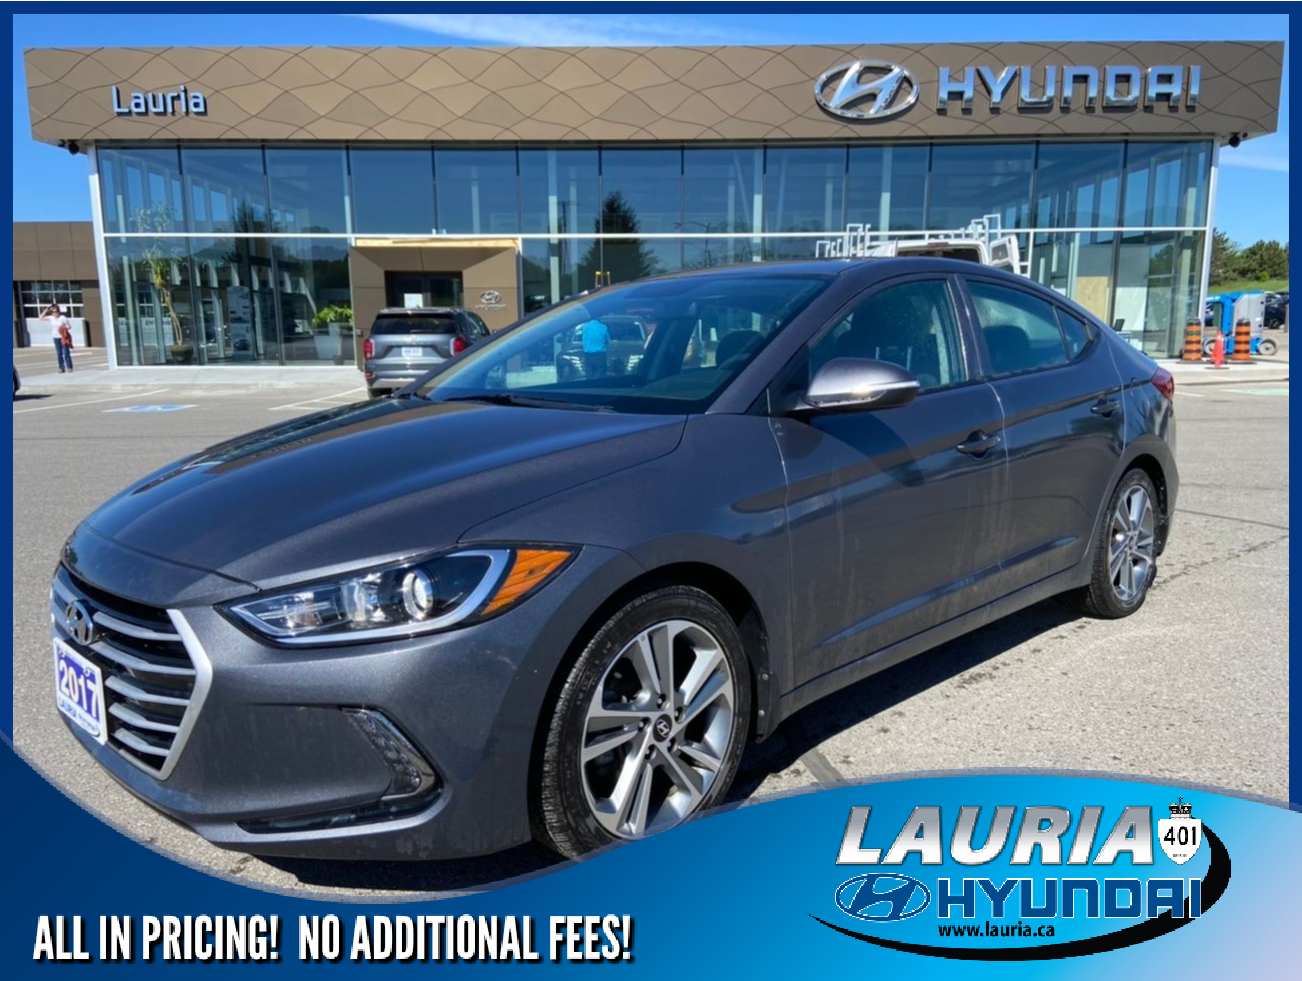 Certified Pre-Owned 2017 Hyundai Elantra GLS Auto - ULTRA LOW KMS